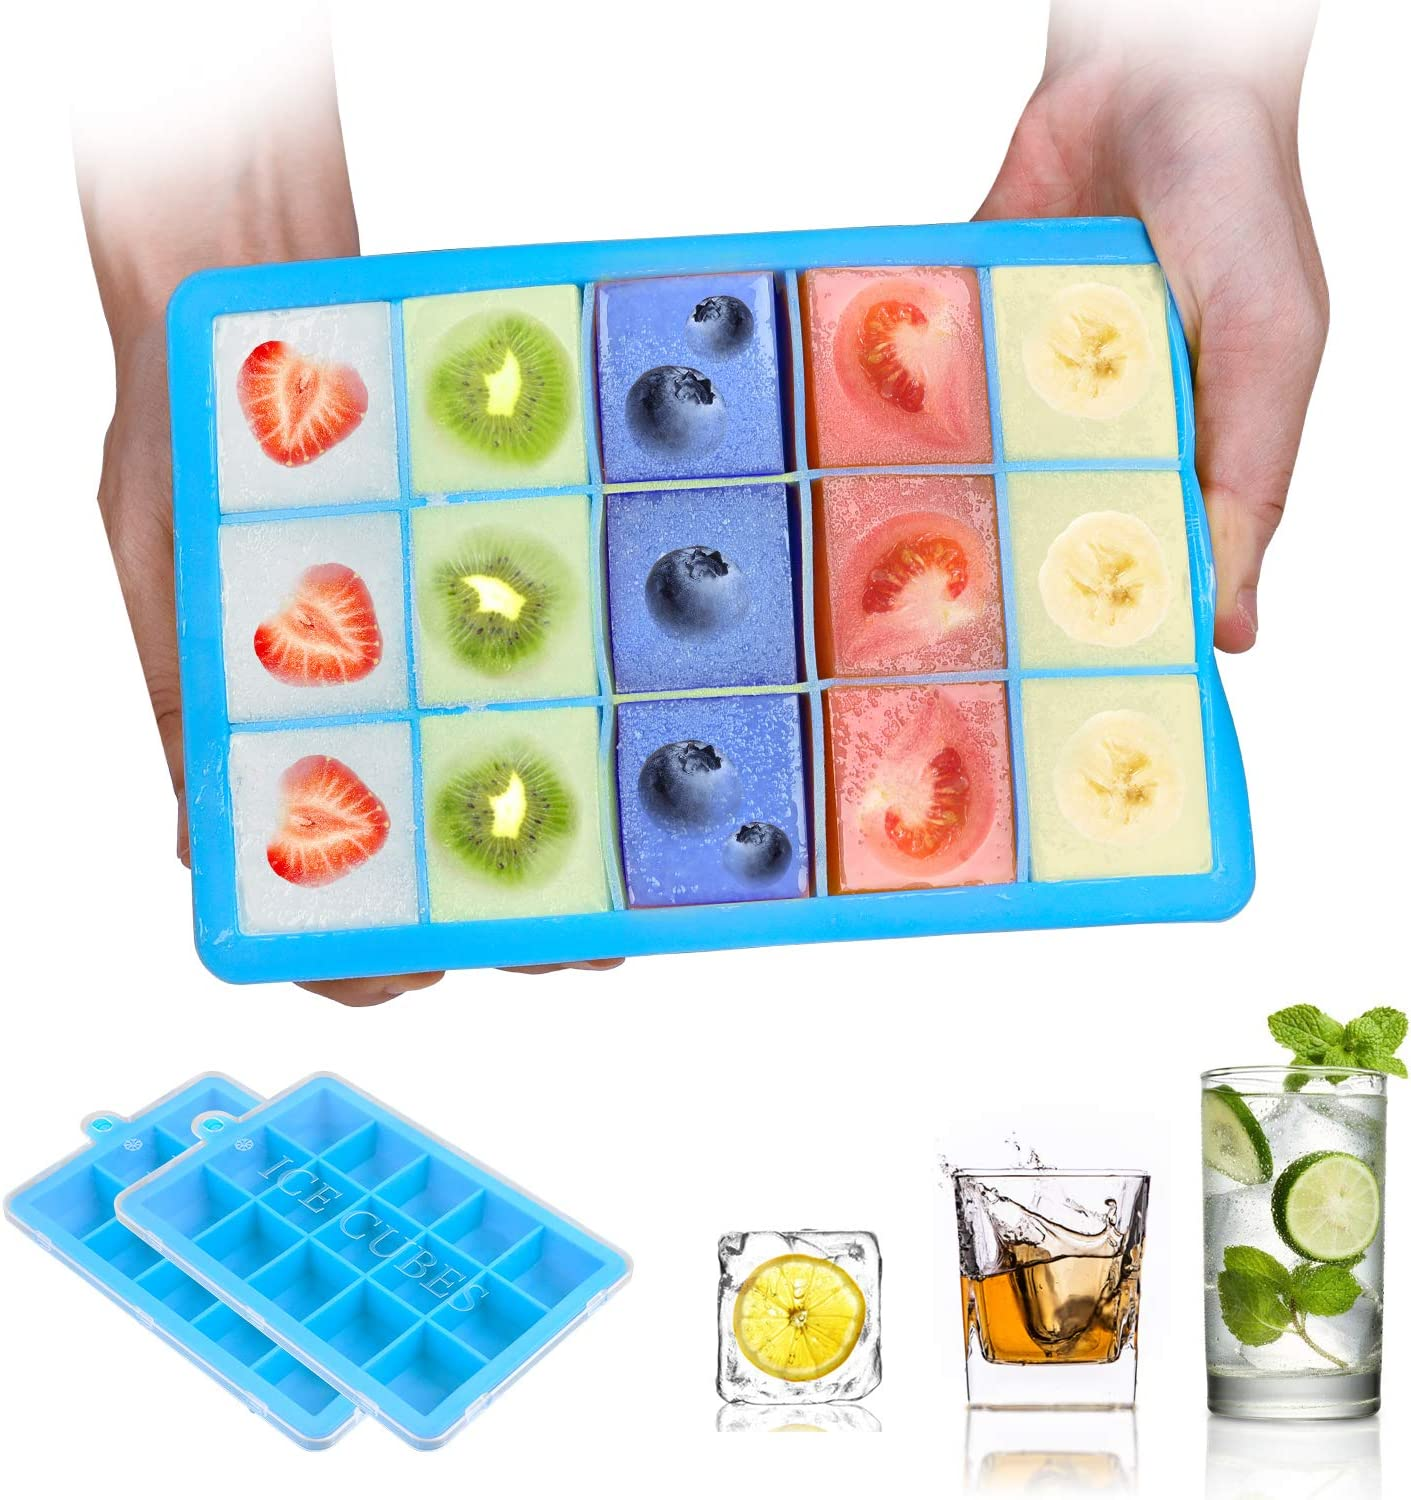 Ice Cube Trays,BomStar 2-Pack Silicone Ice Cube Molds with Lid Food Grade Silica Gel Flexible and BPA Free with Spill-Resistant Removable Lid Ice Cube Molds for Chilled Drinks, Whiskey & Cocktails